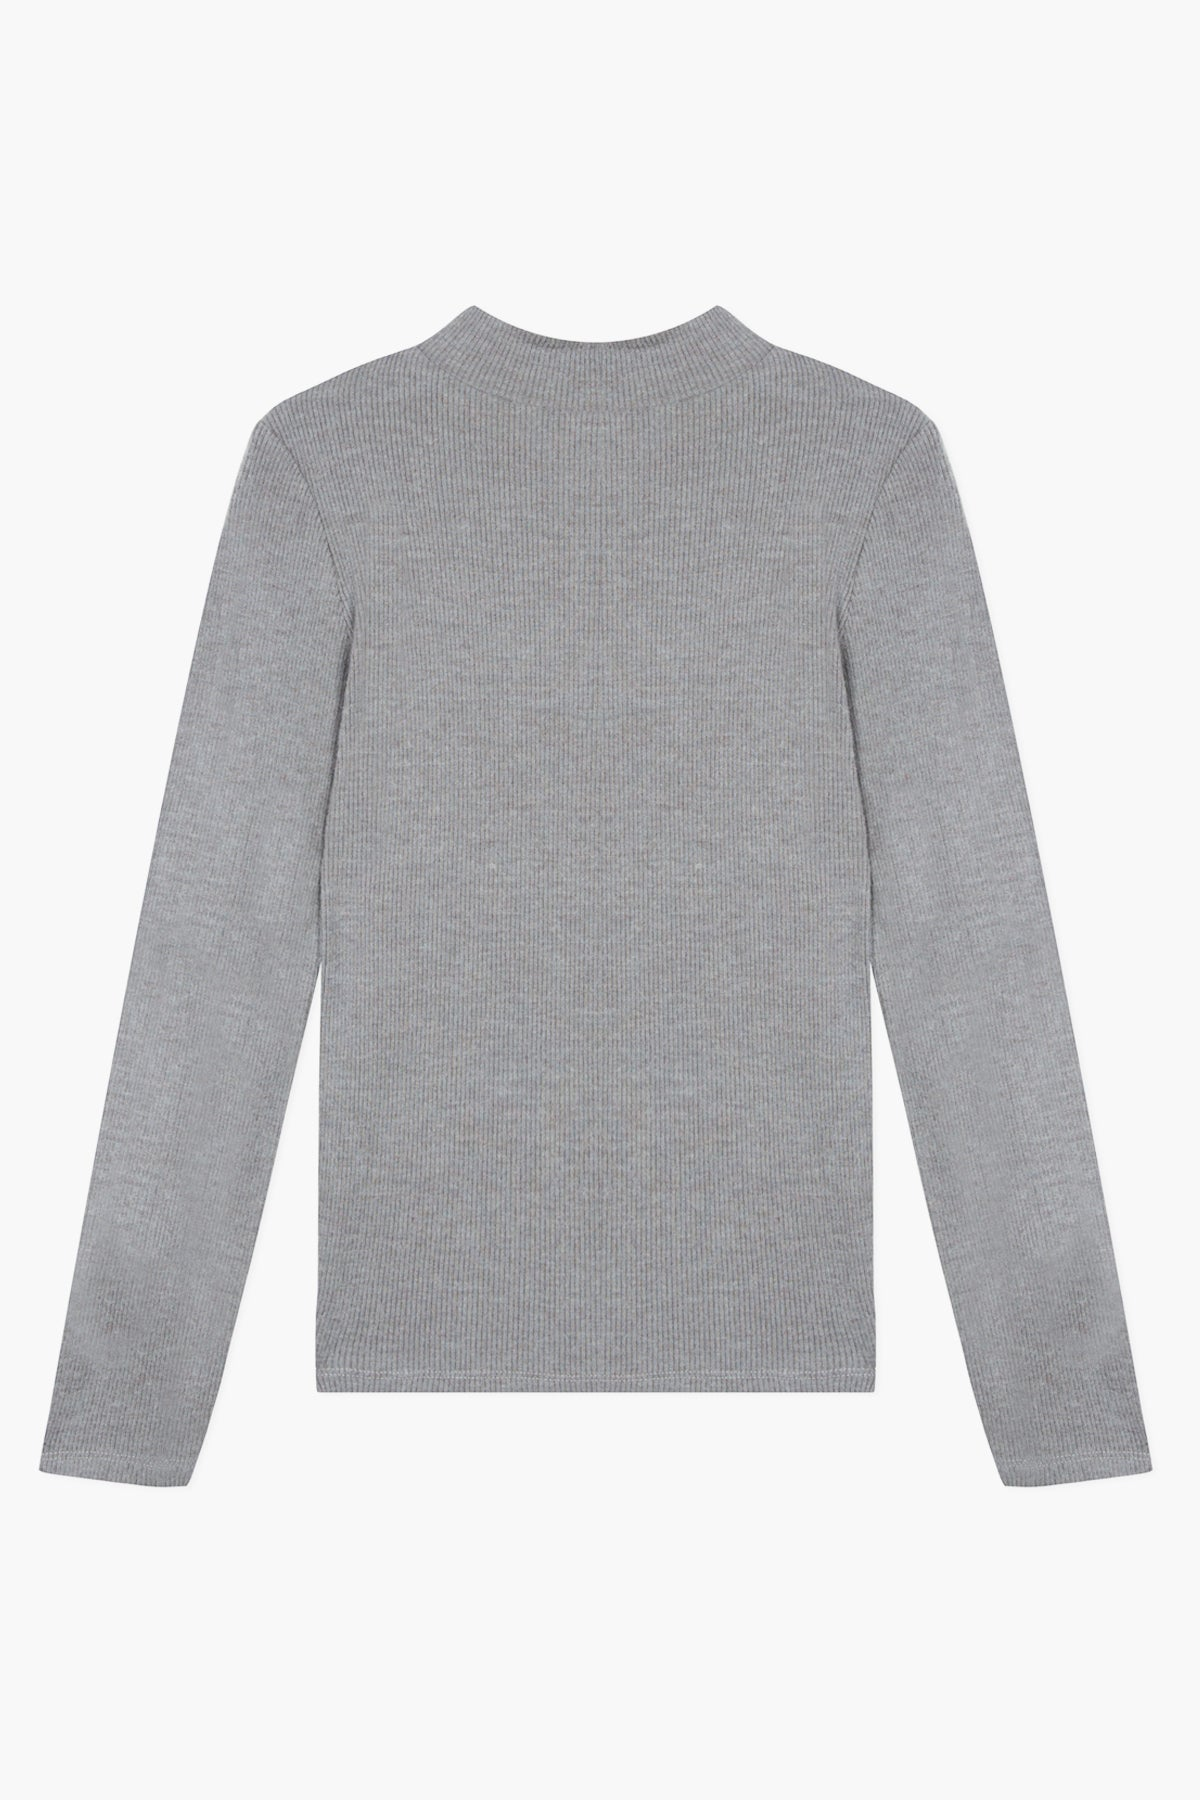 Lili Gaufrette Soft Mock Neck Top - Grey